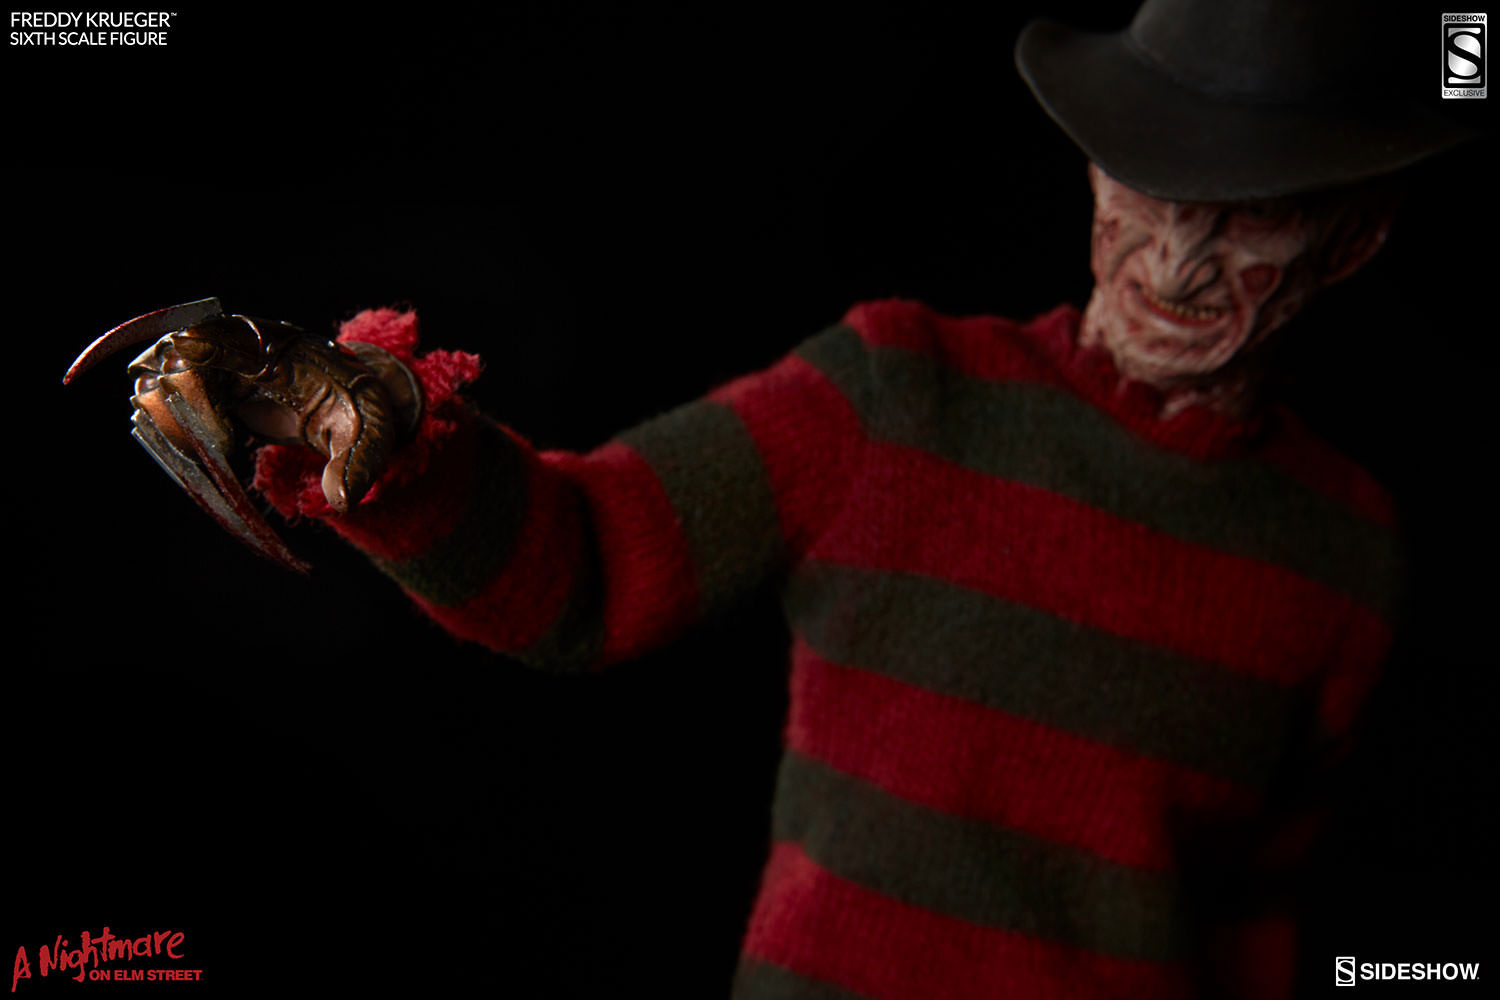 sideshow-nightmare-on-elm-street-freddy-krueger-sixth-scale-fgure-11